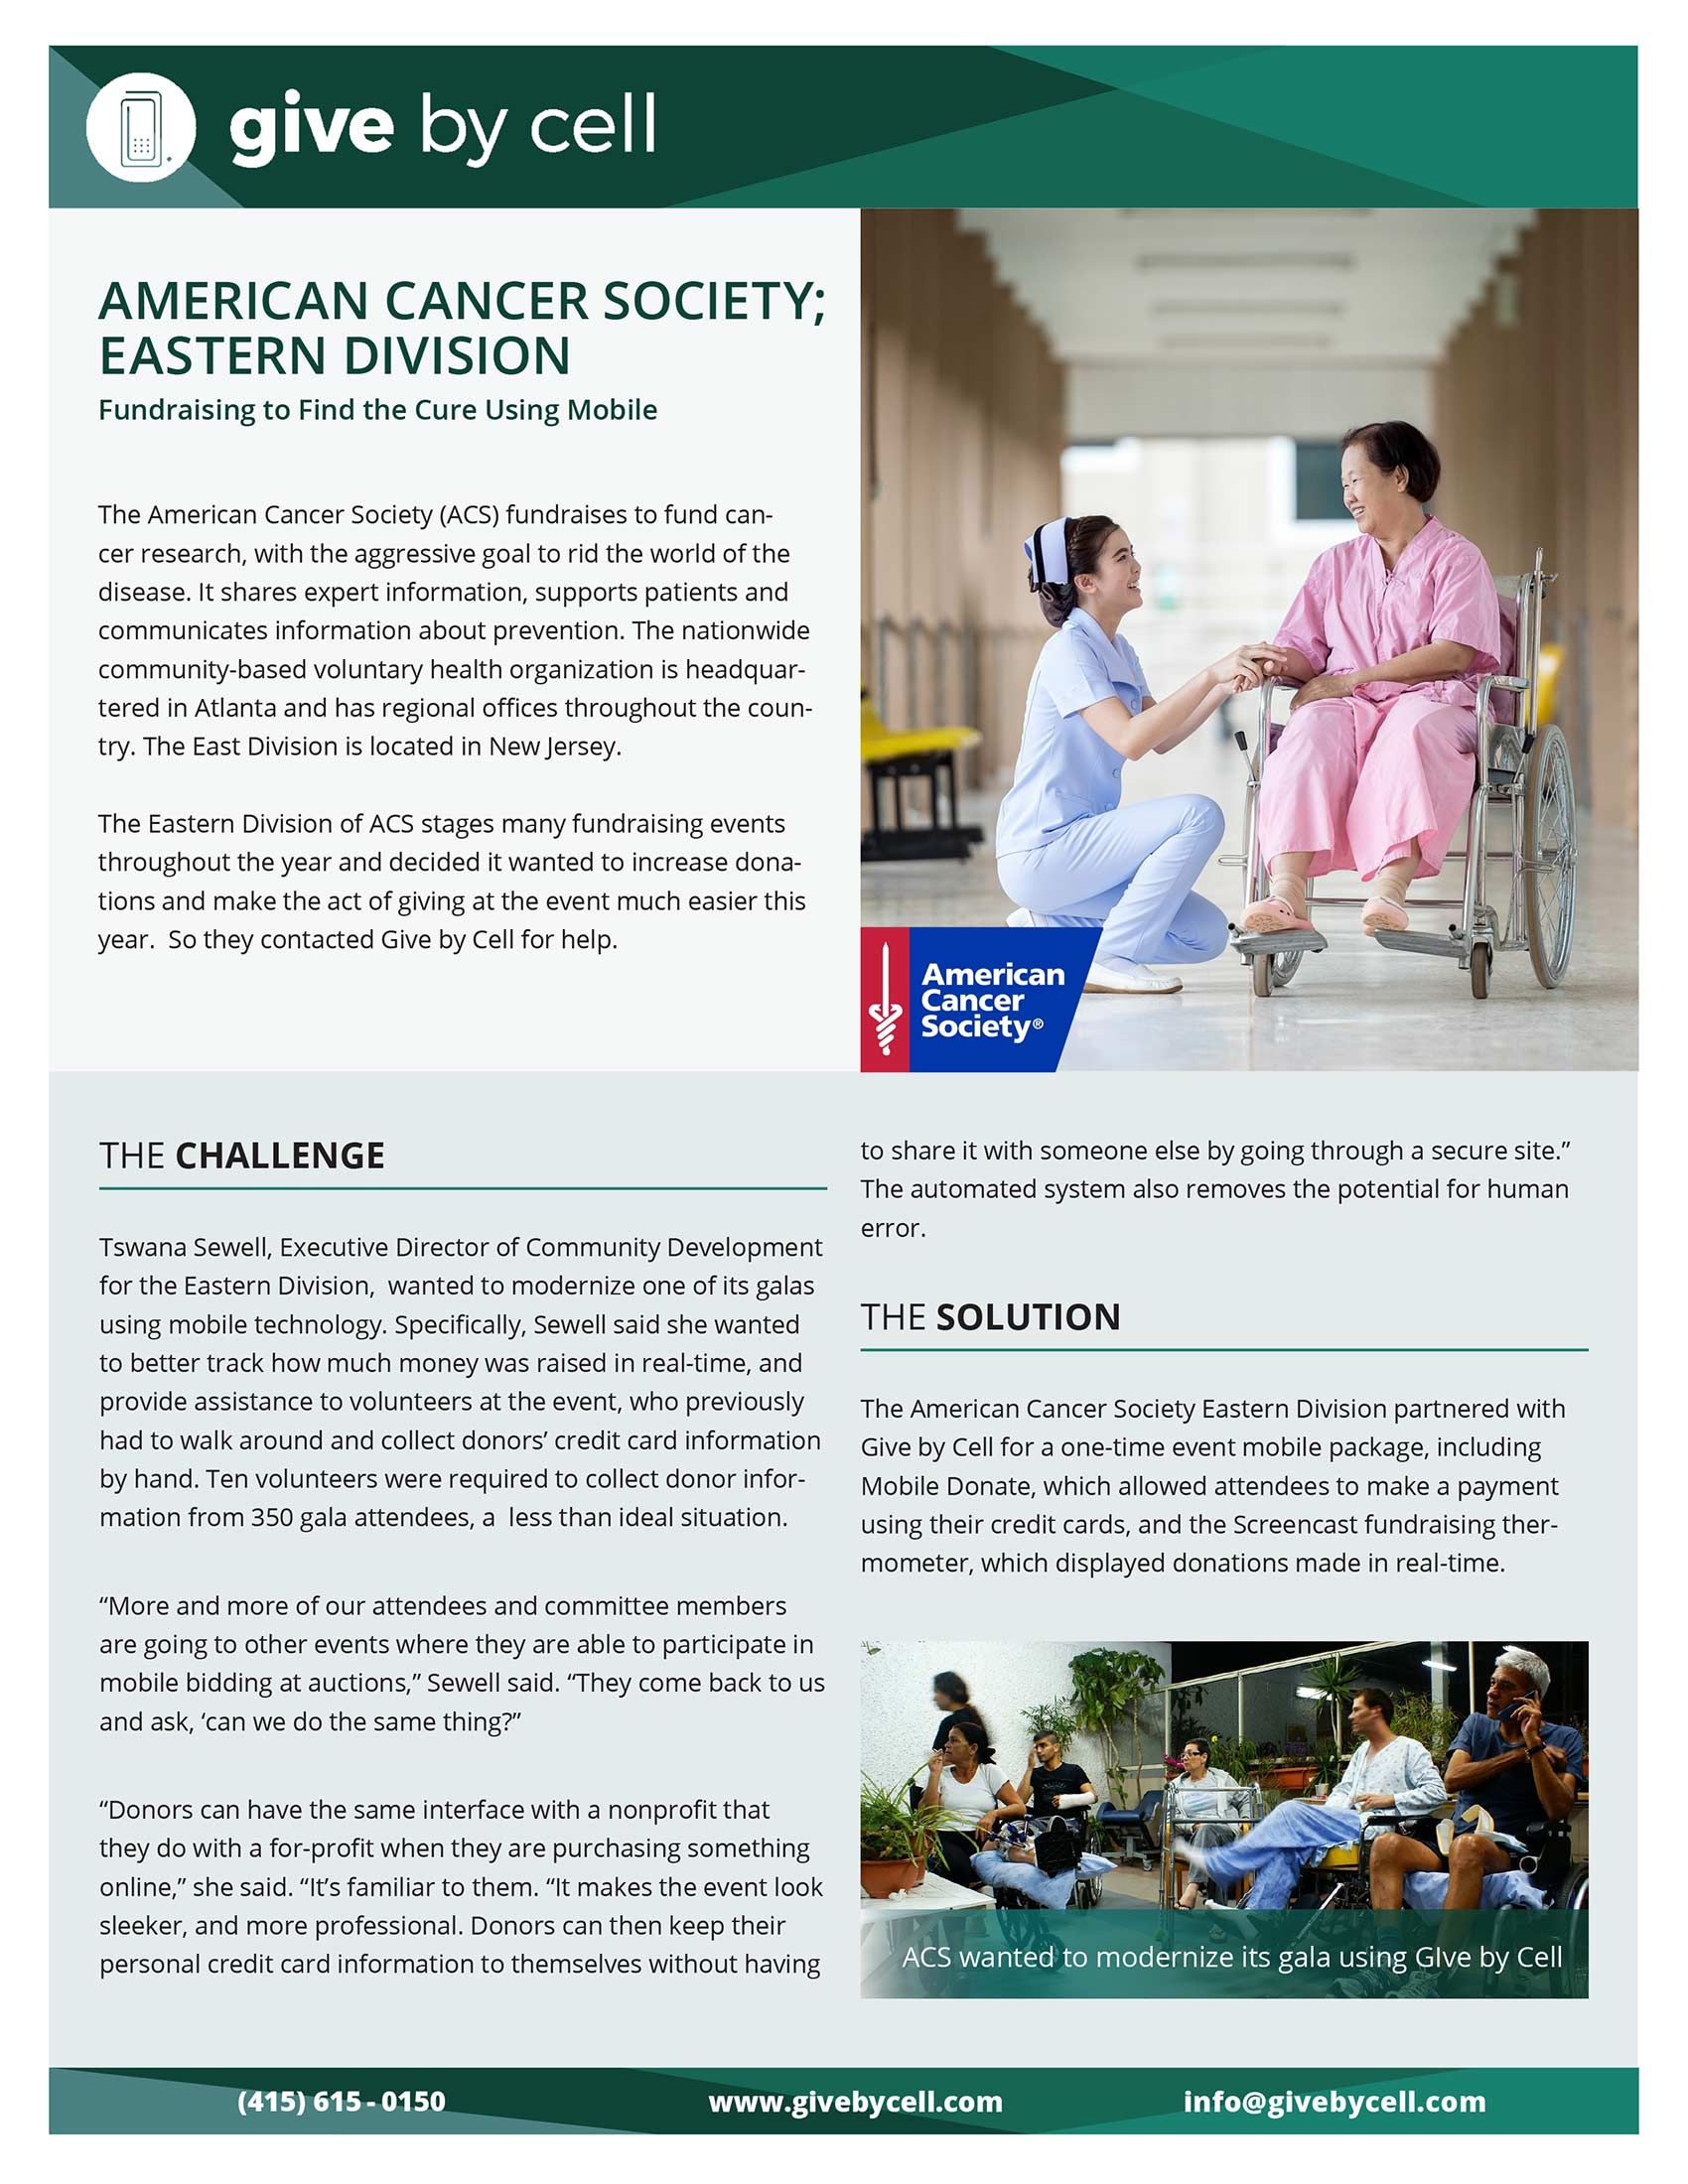 American Cancer Society; Eastern Division